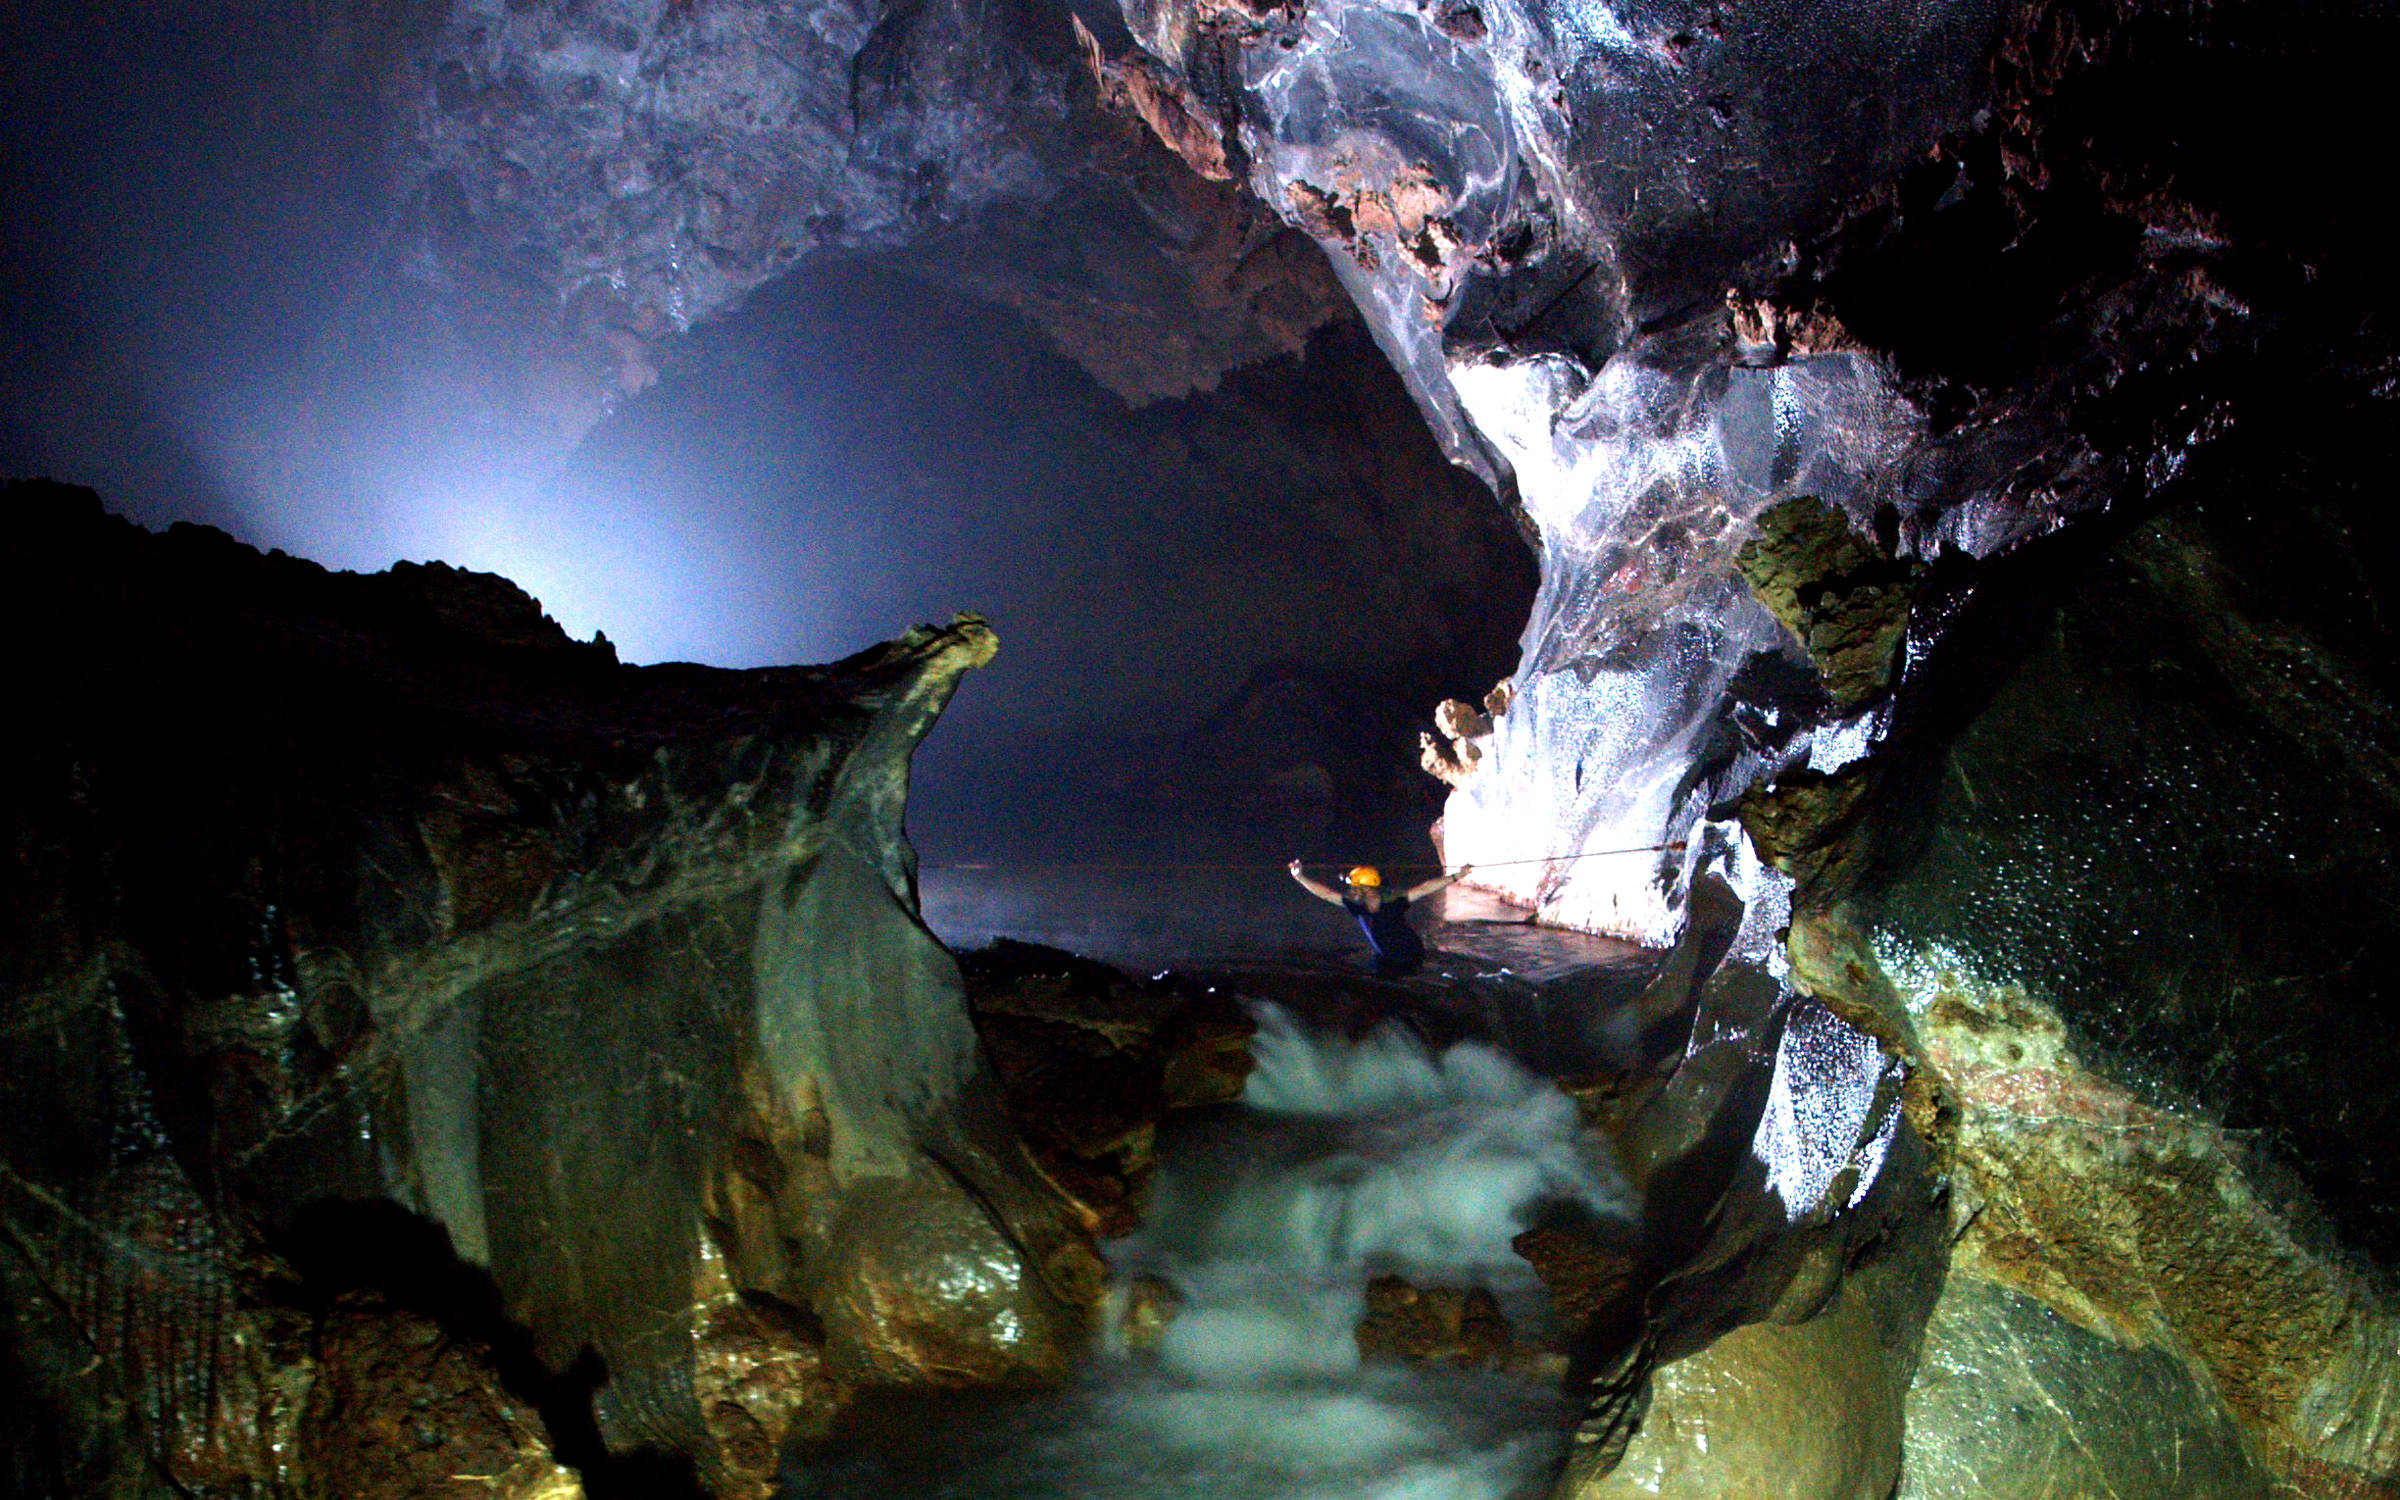 Vietnam's 'Infinite Cave' Already Has a Two-year Wait List